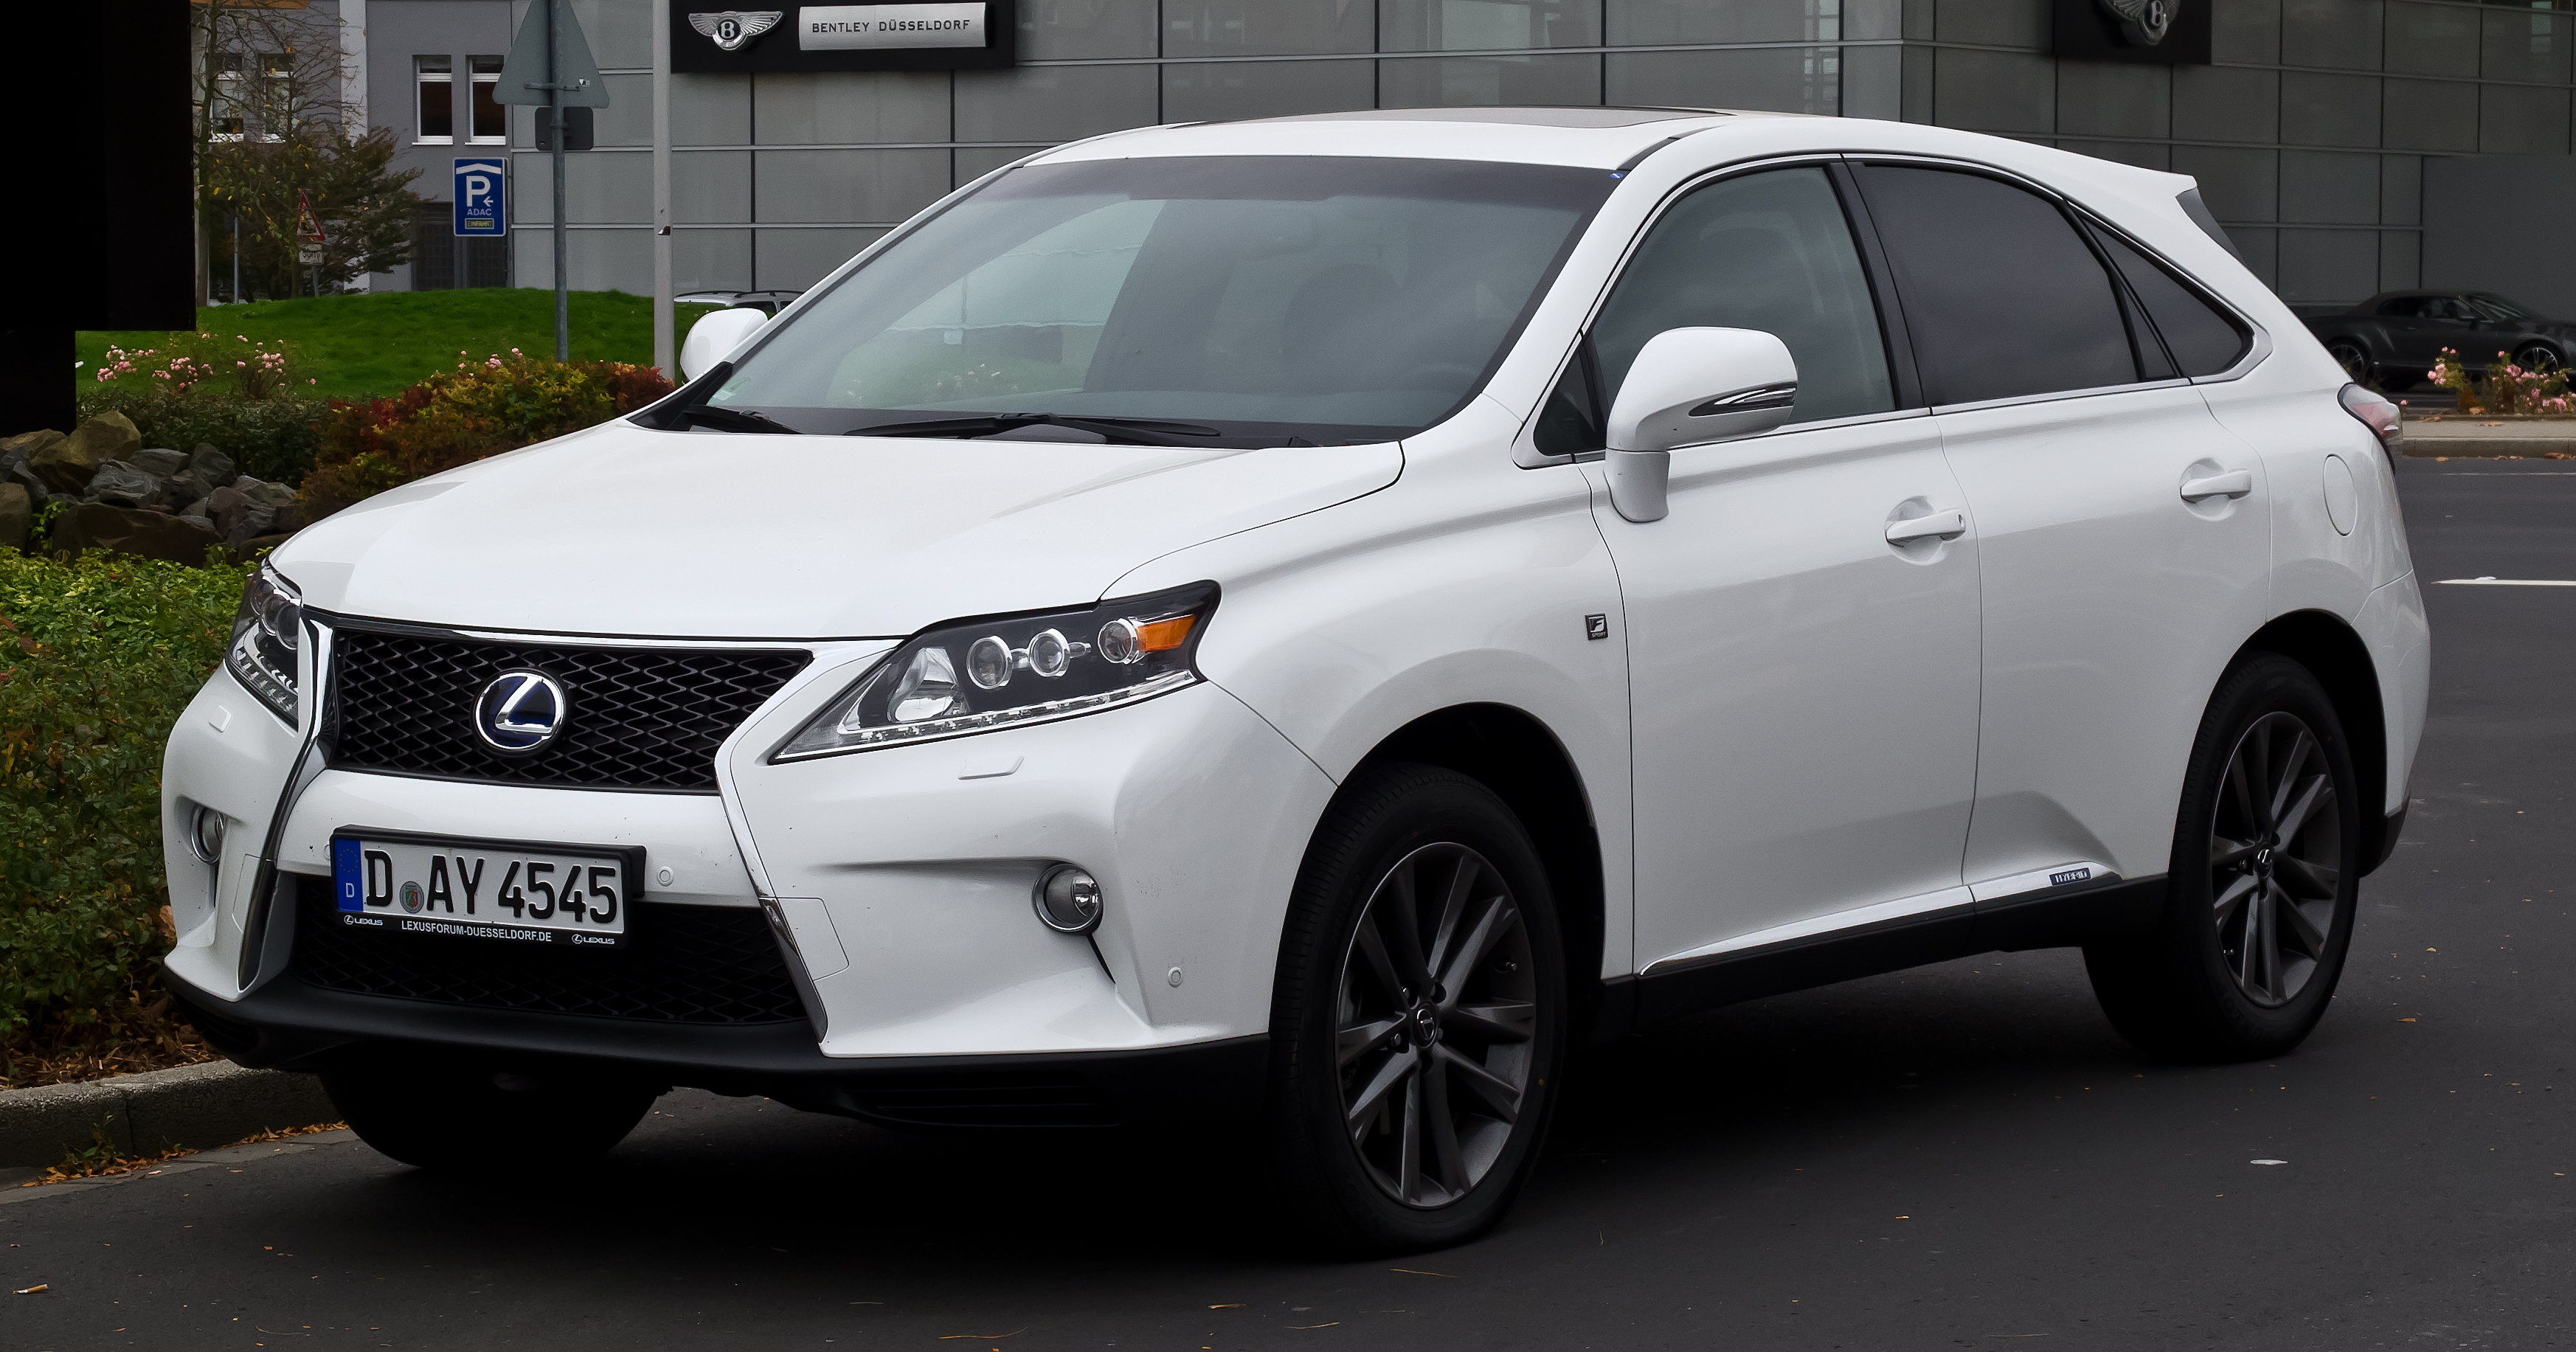 2017 Lexus RX 450h F Sport photo - 1